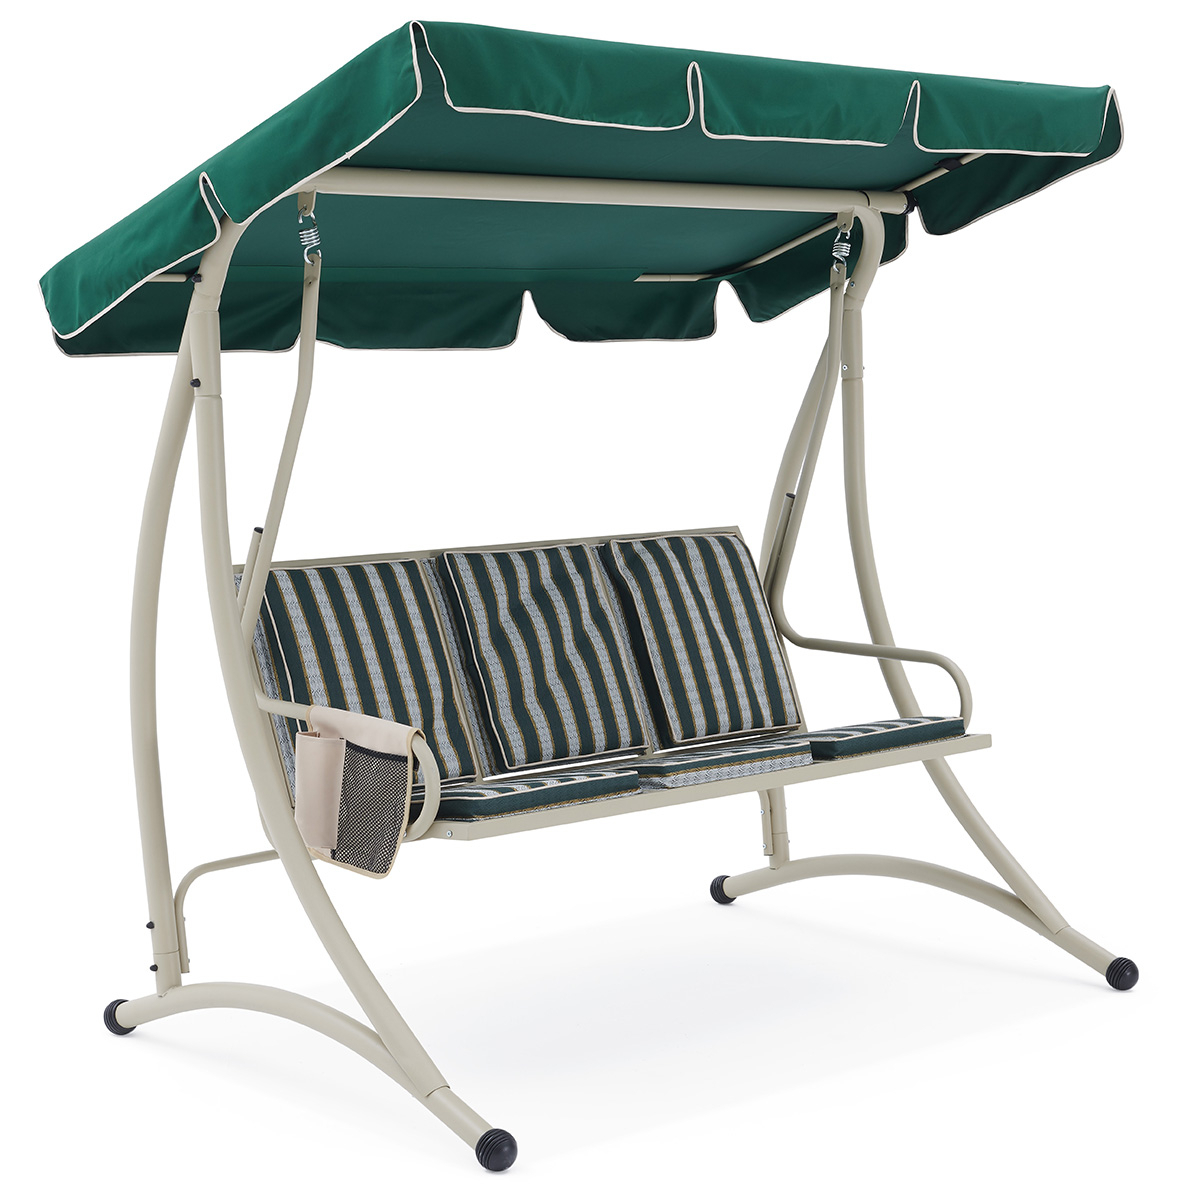 Korina 3 Seater Swing With Regard To Outdoor Pvc Coated Polyester Porch Swings With Stand (View 8 of 25)